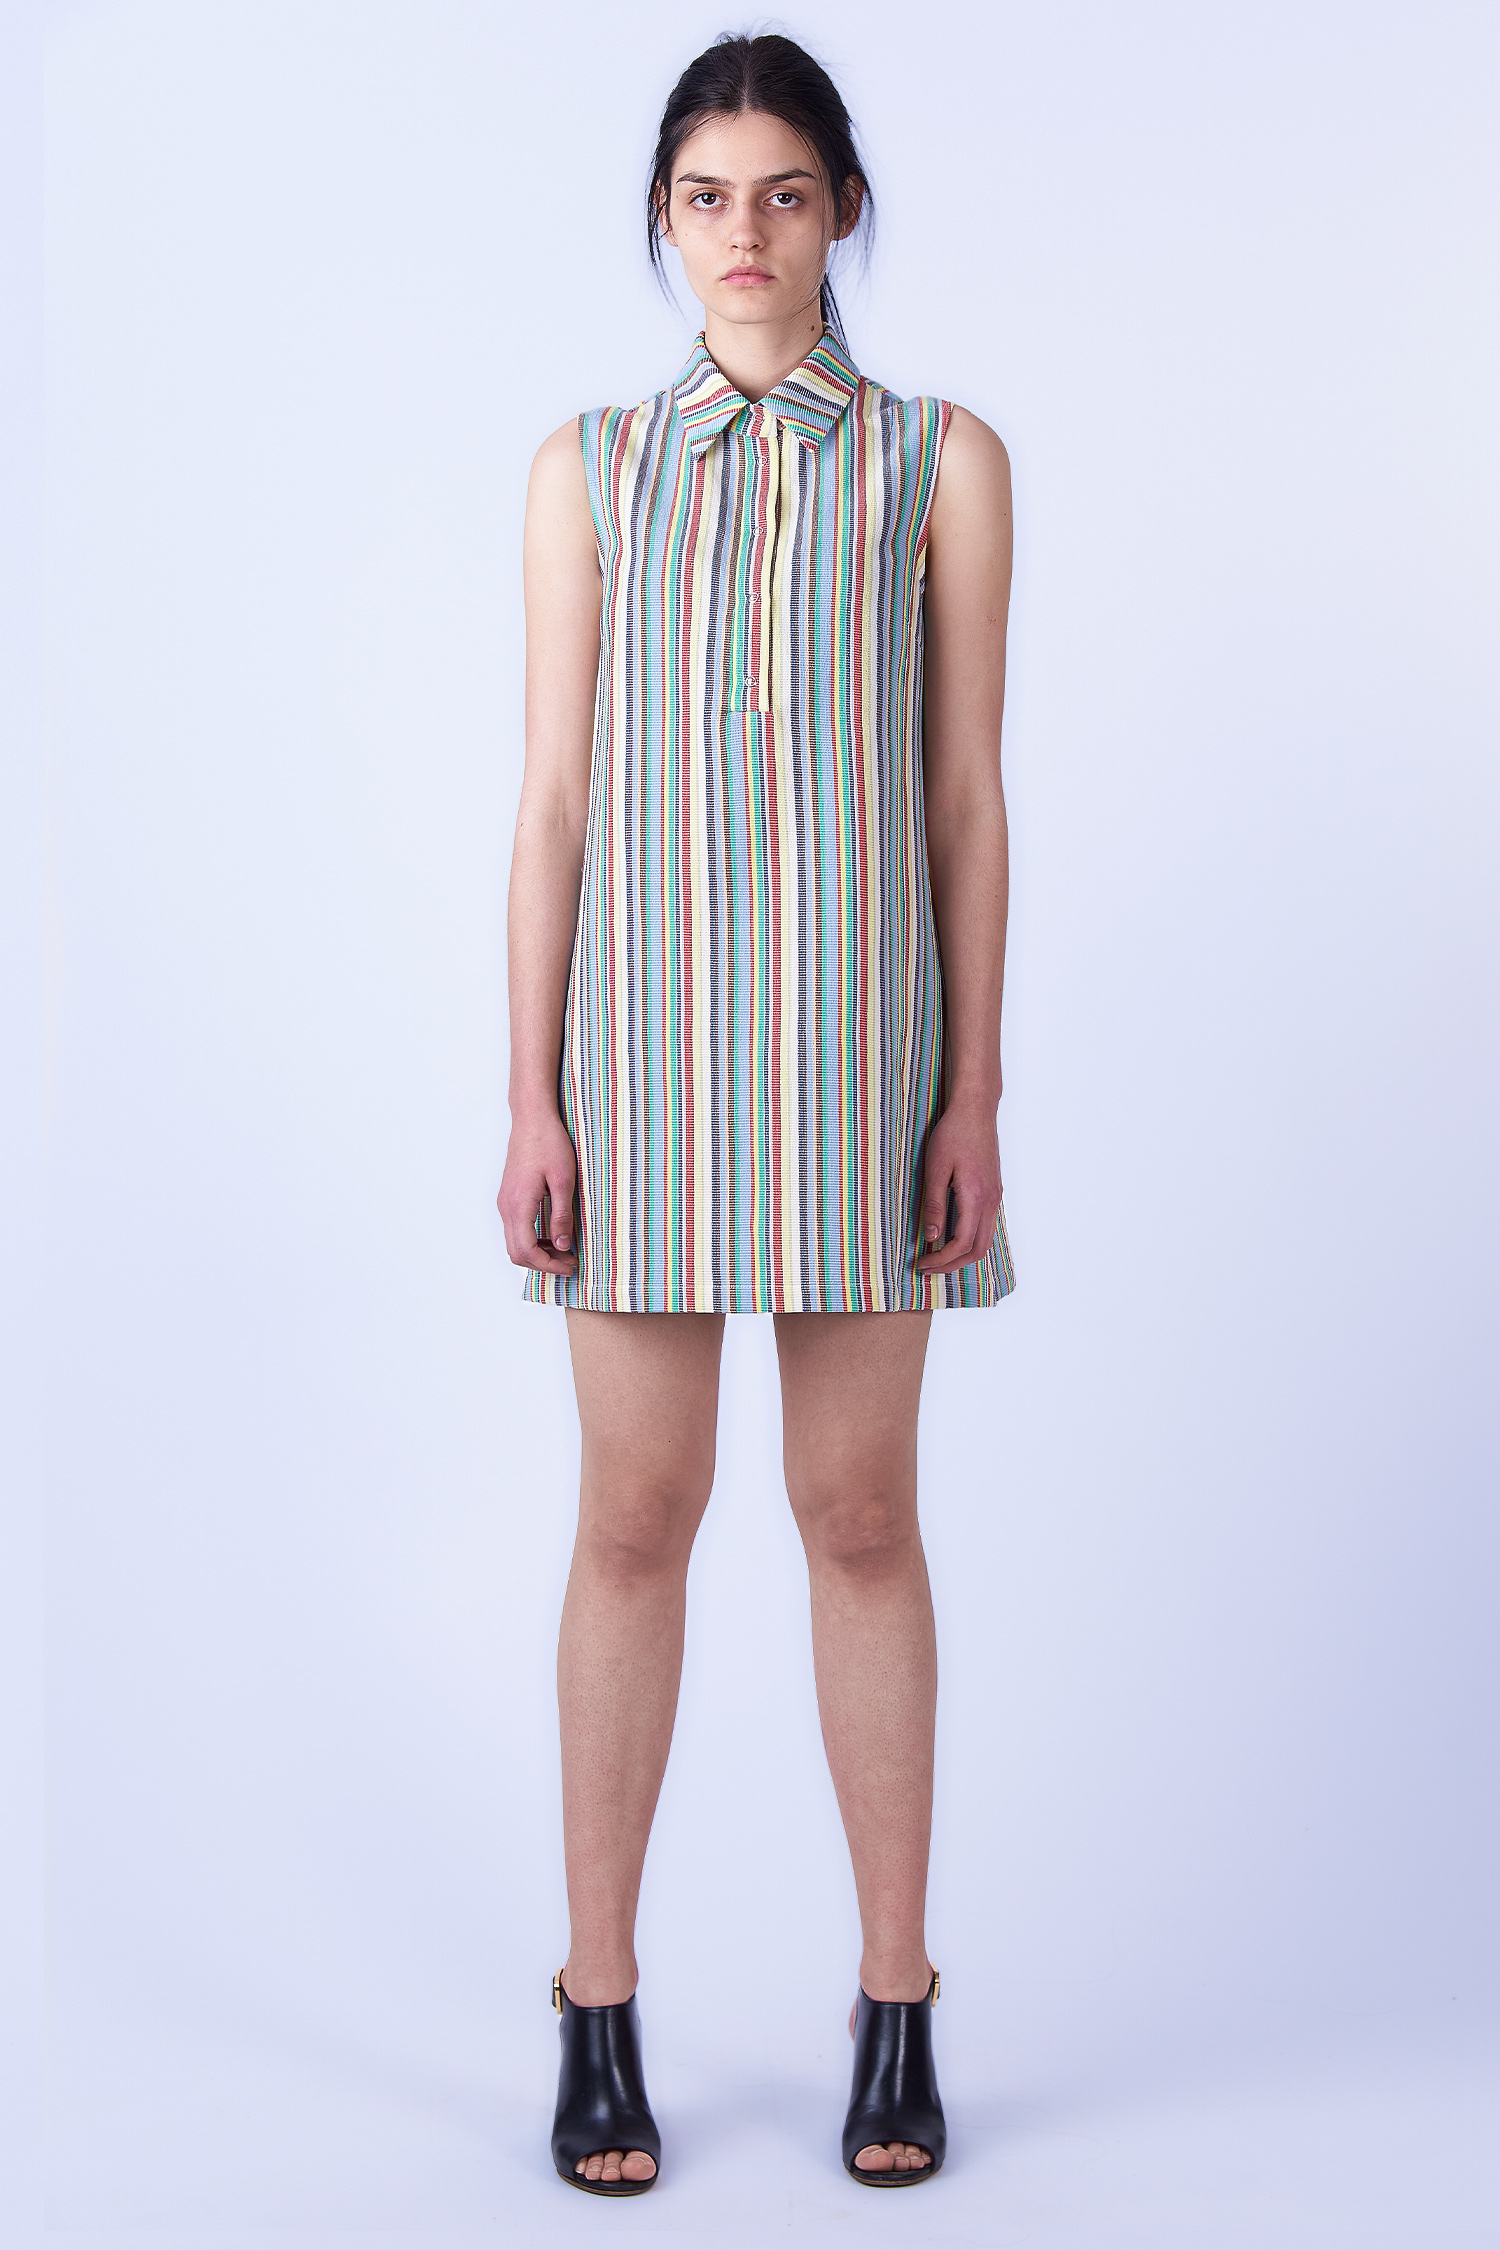 Acephala SS2019 Slavic Goddesses Color Striped Midi Dress front